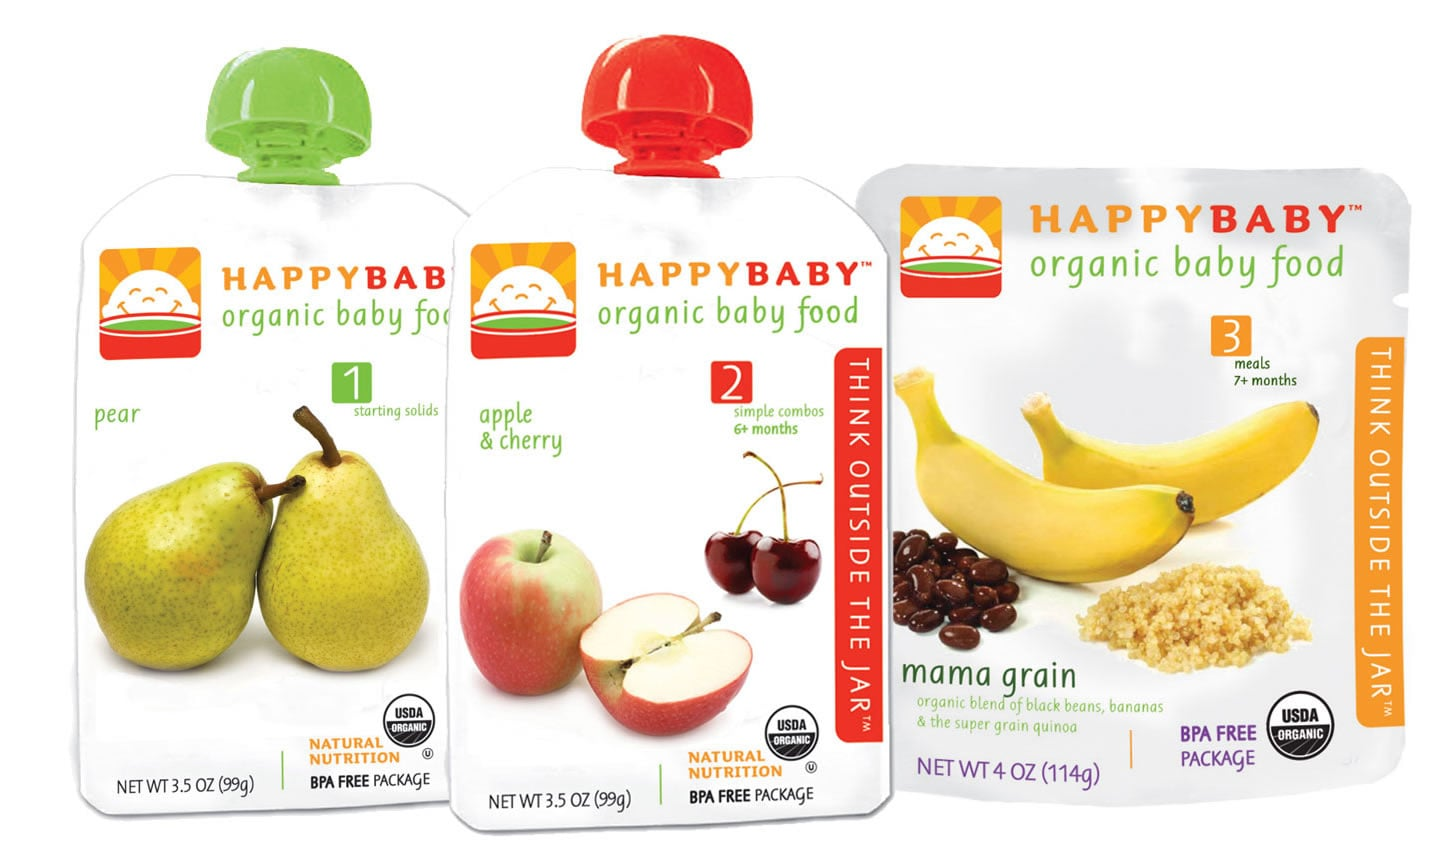 HappyBaby (4-oz Pouch For $1.50)